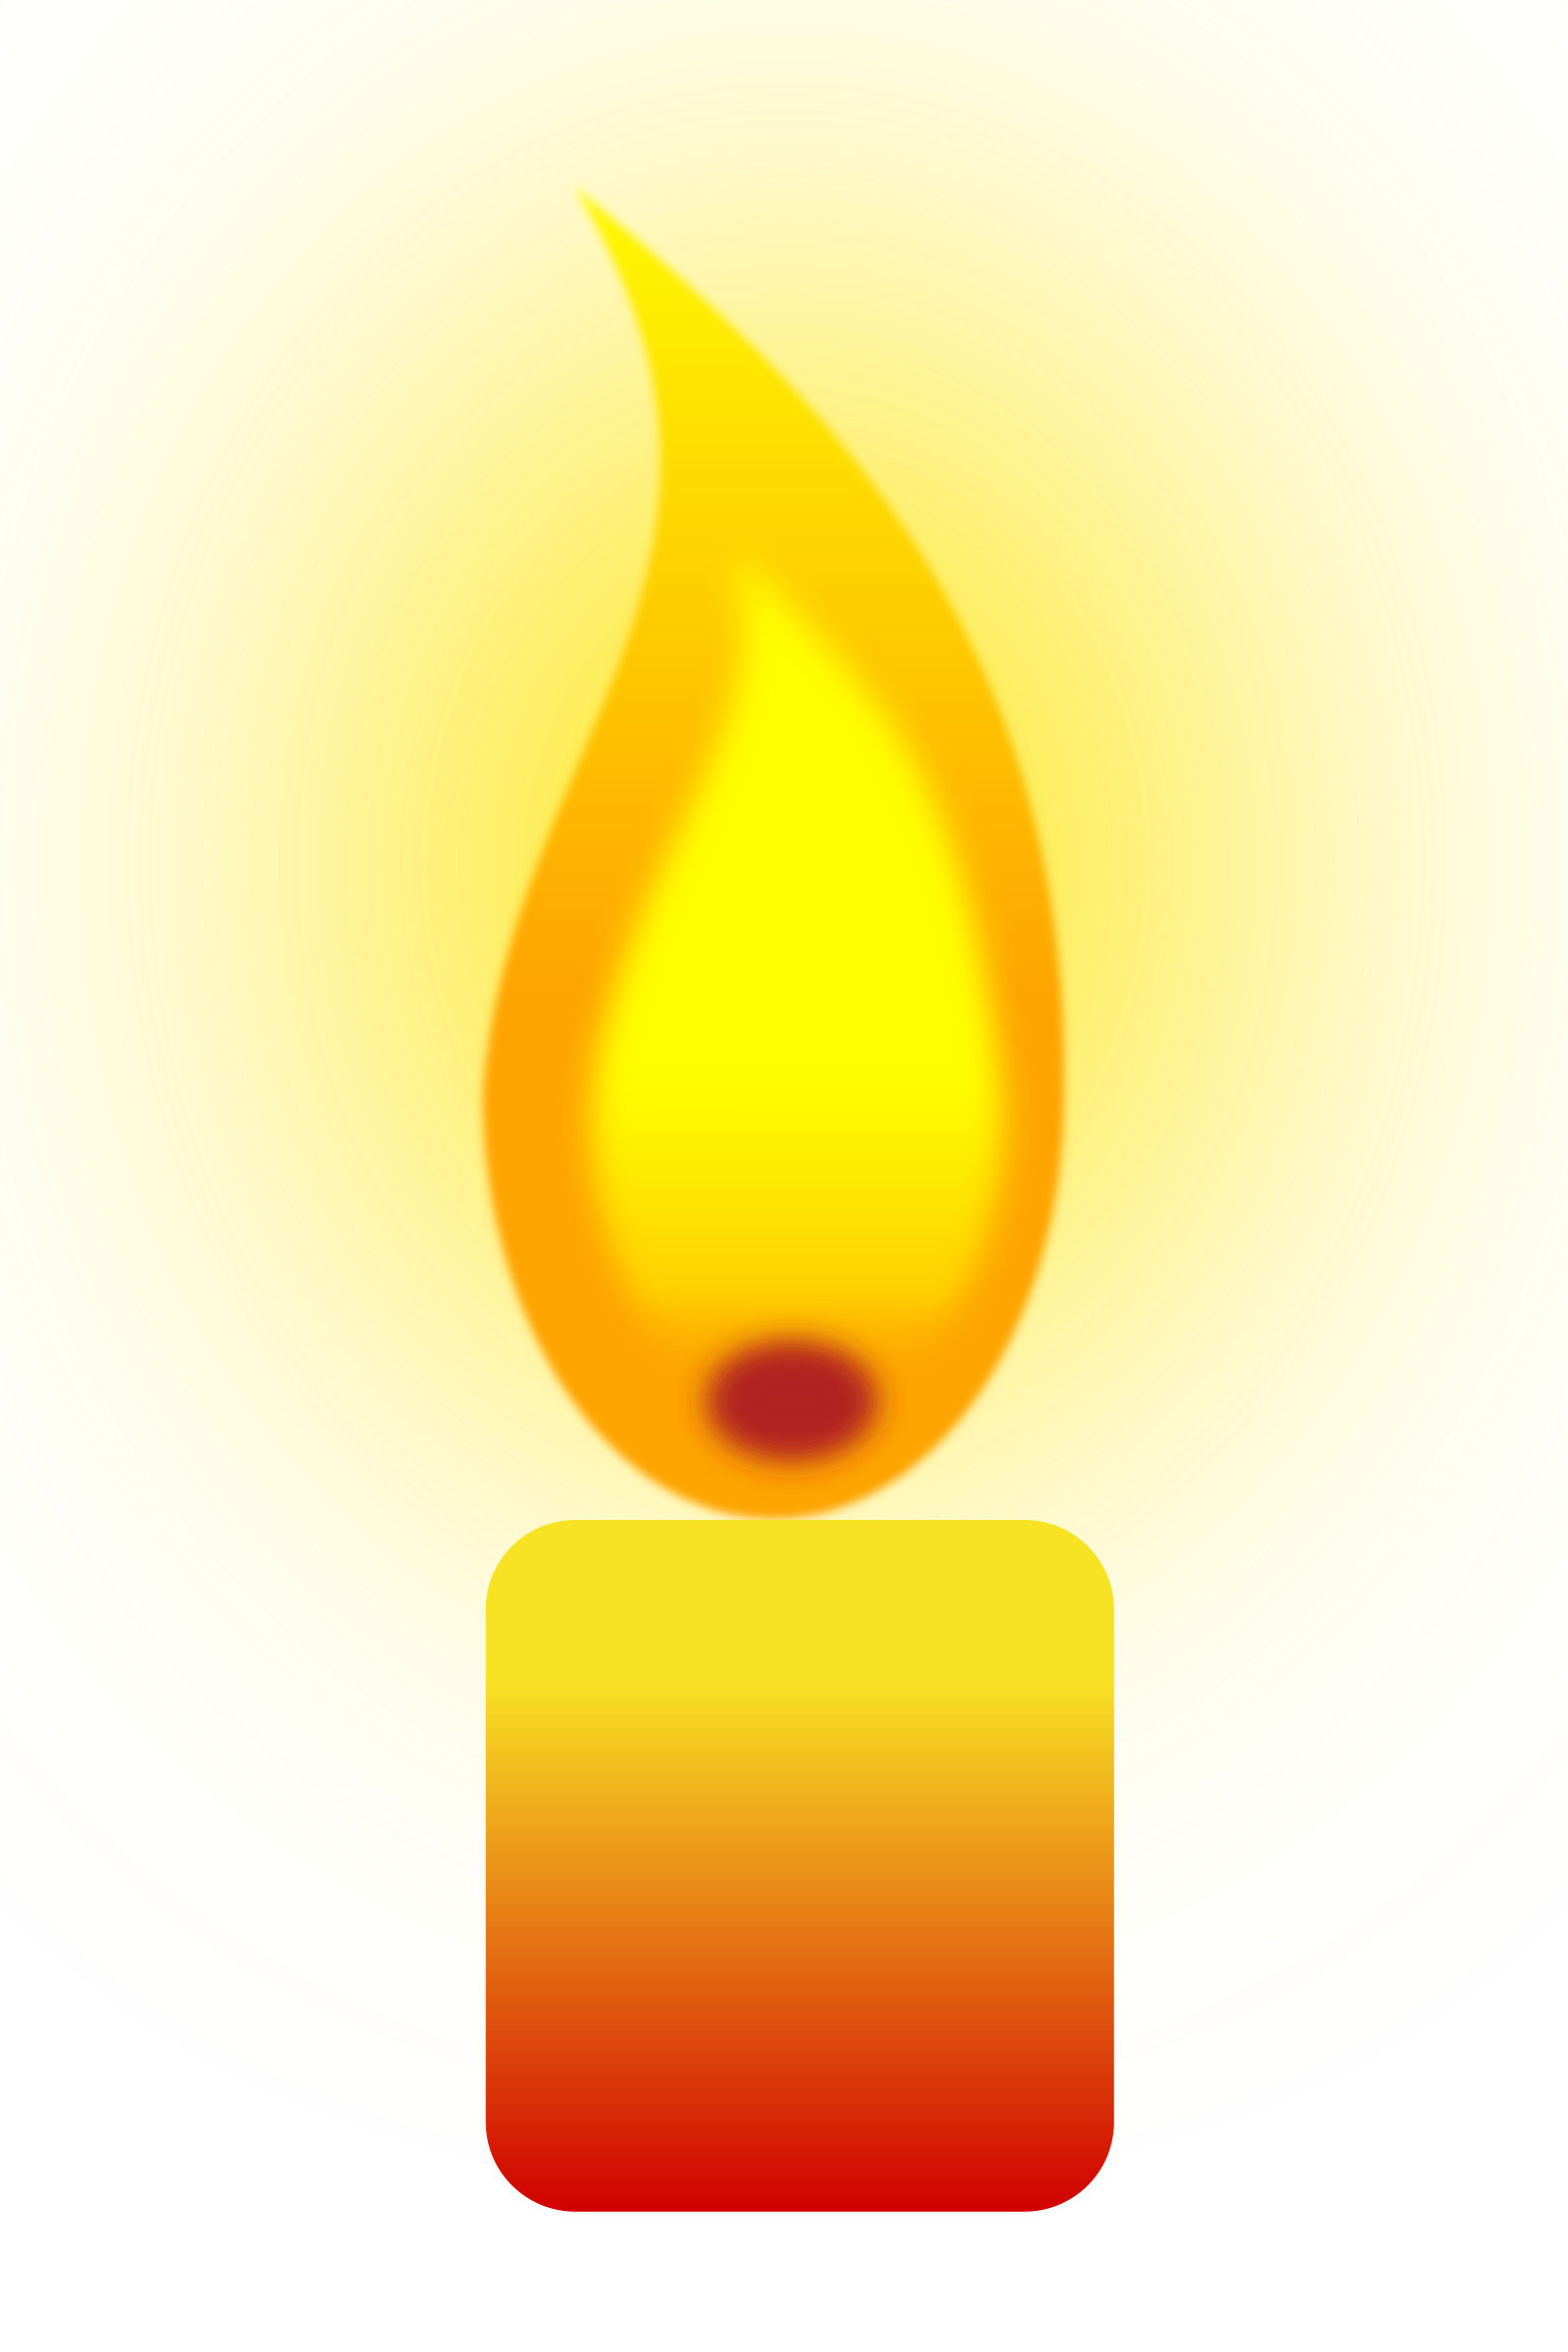 png free stock Transparent candle translucent. Clipart burning big image